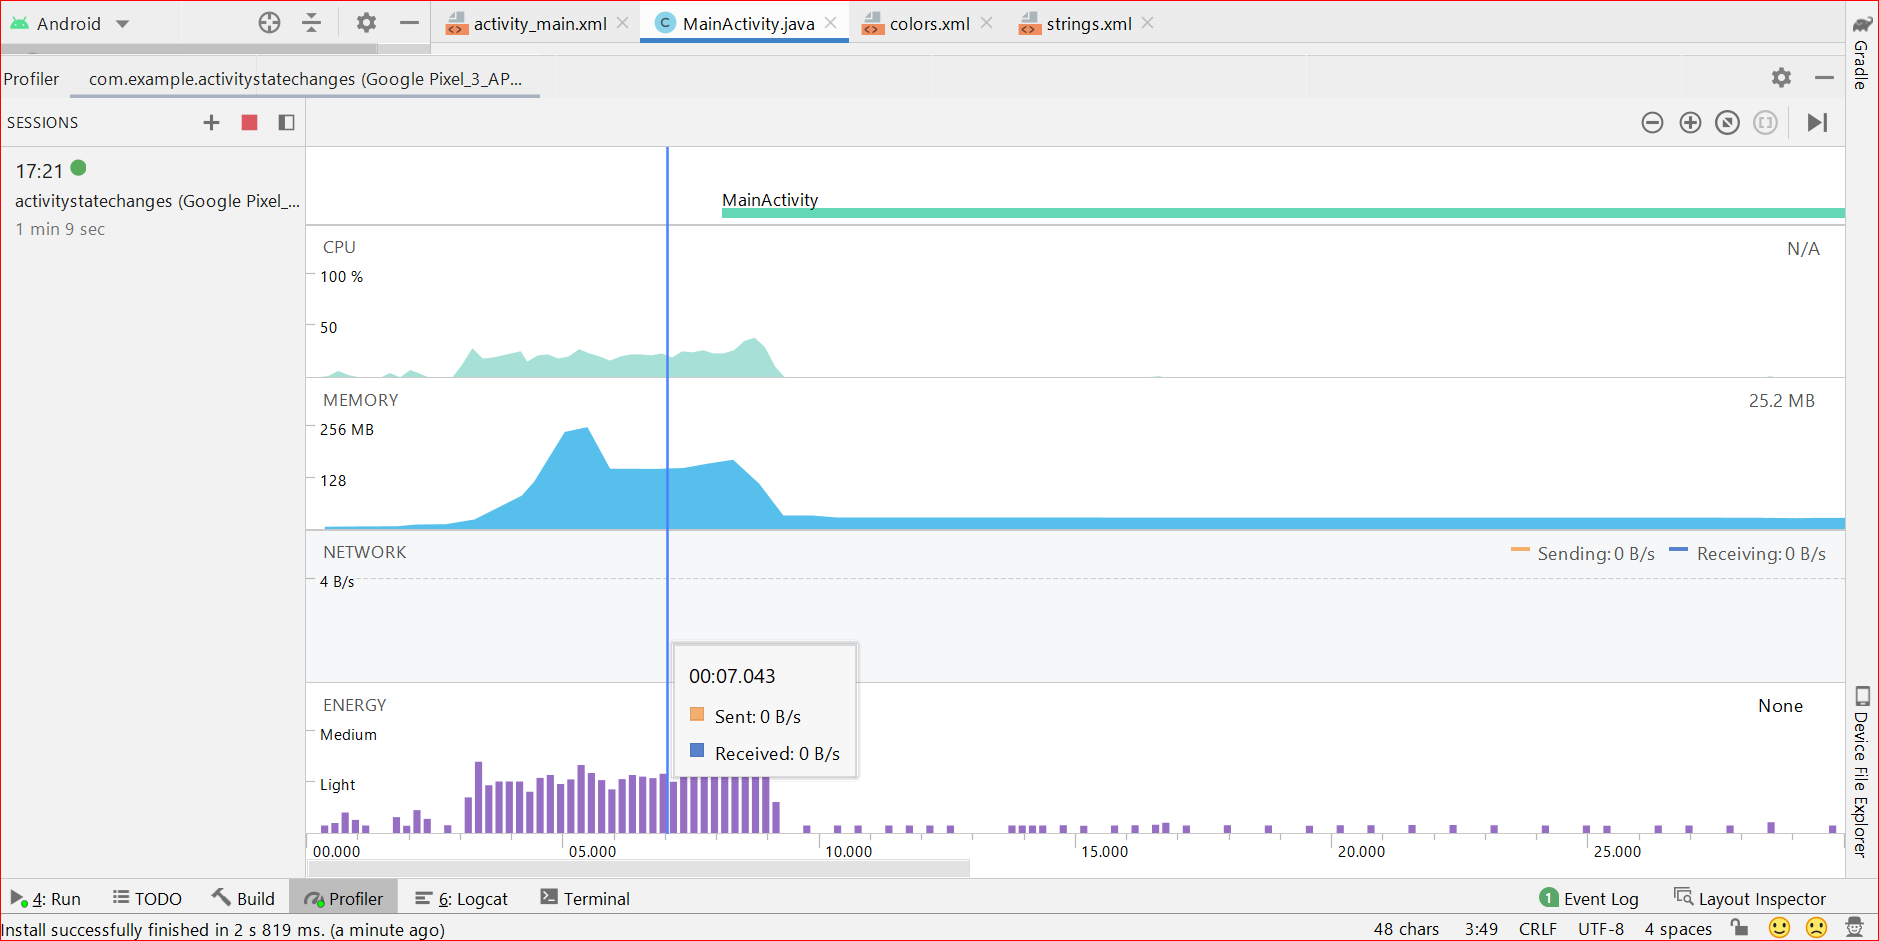 Image Showing App Usage Data Using  Andorid Profiler in various respects